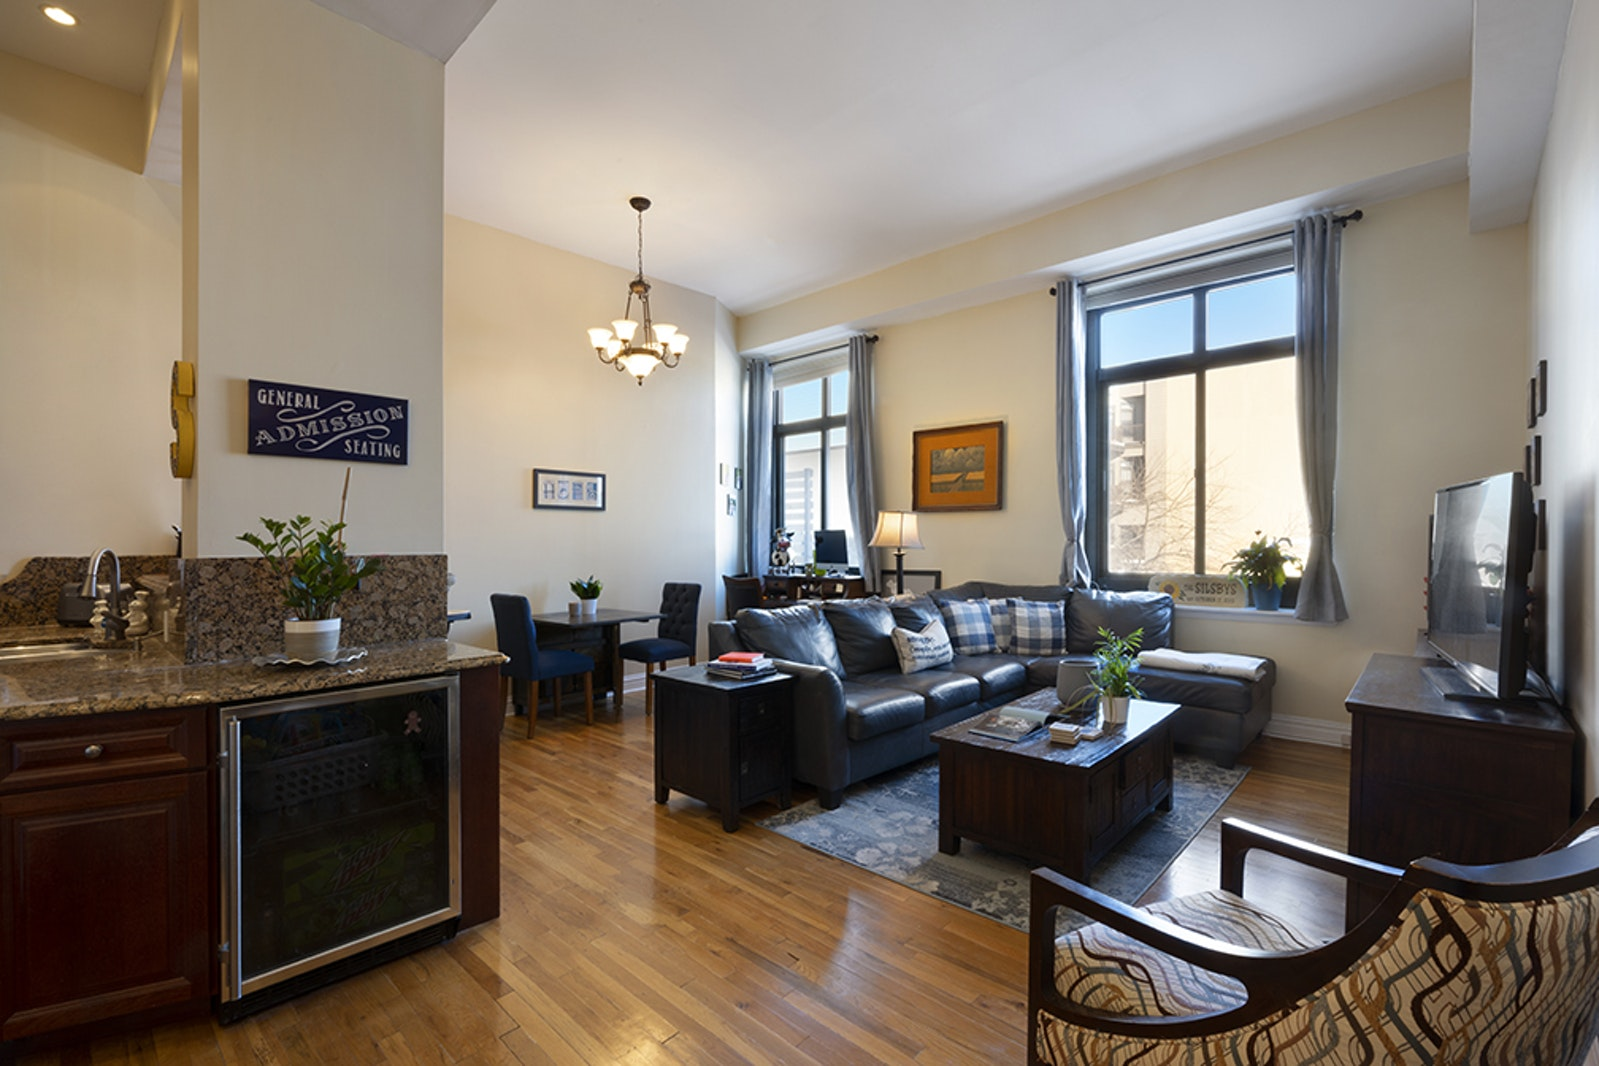 518 -536 GREGORY AVE C301